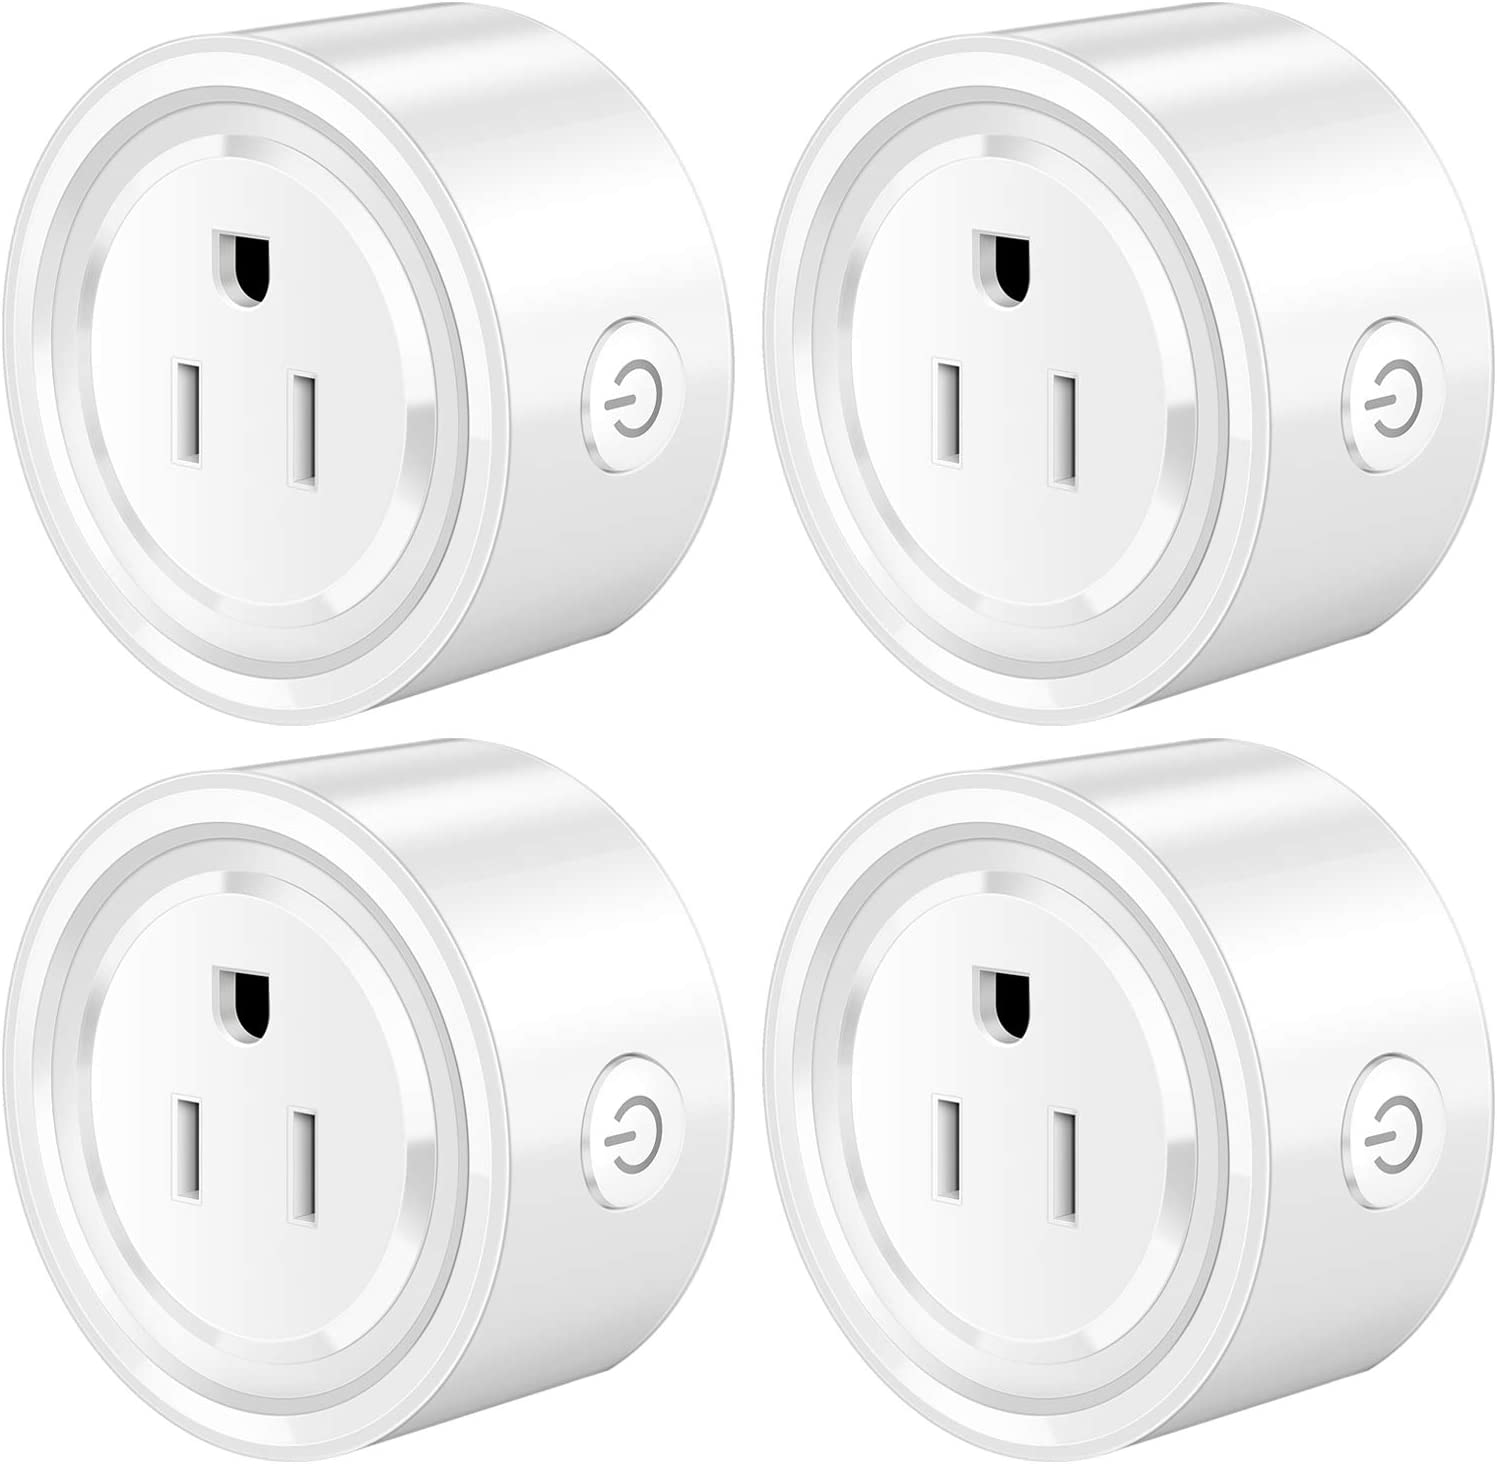 Smart plugs Homeazi Mini smart WiFi Outlets with remote control and timer function work with Alexa and Google Home, 2.4GHz WiFi, No Hub Required, 4 Pack